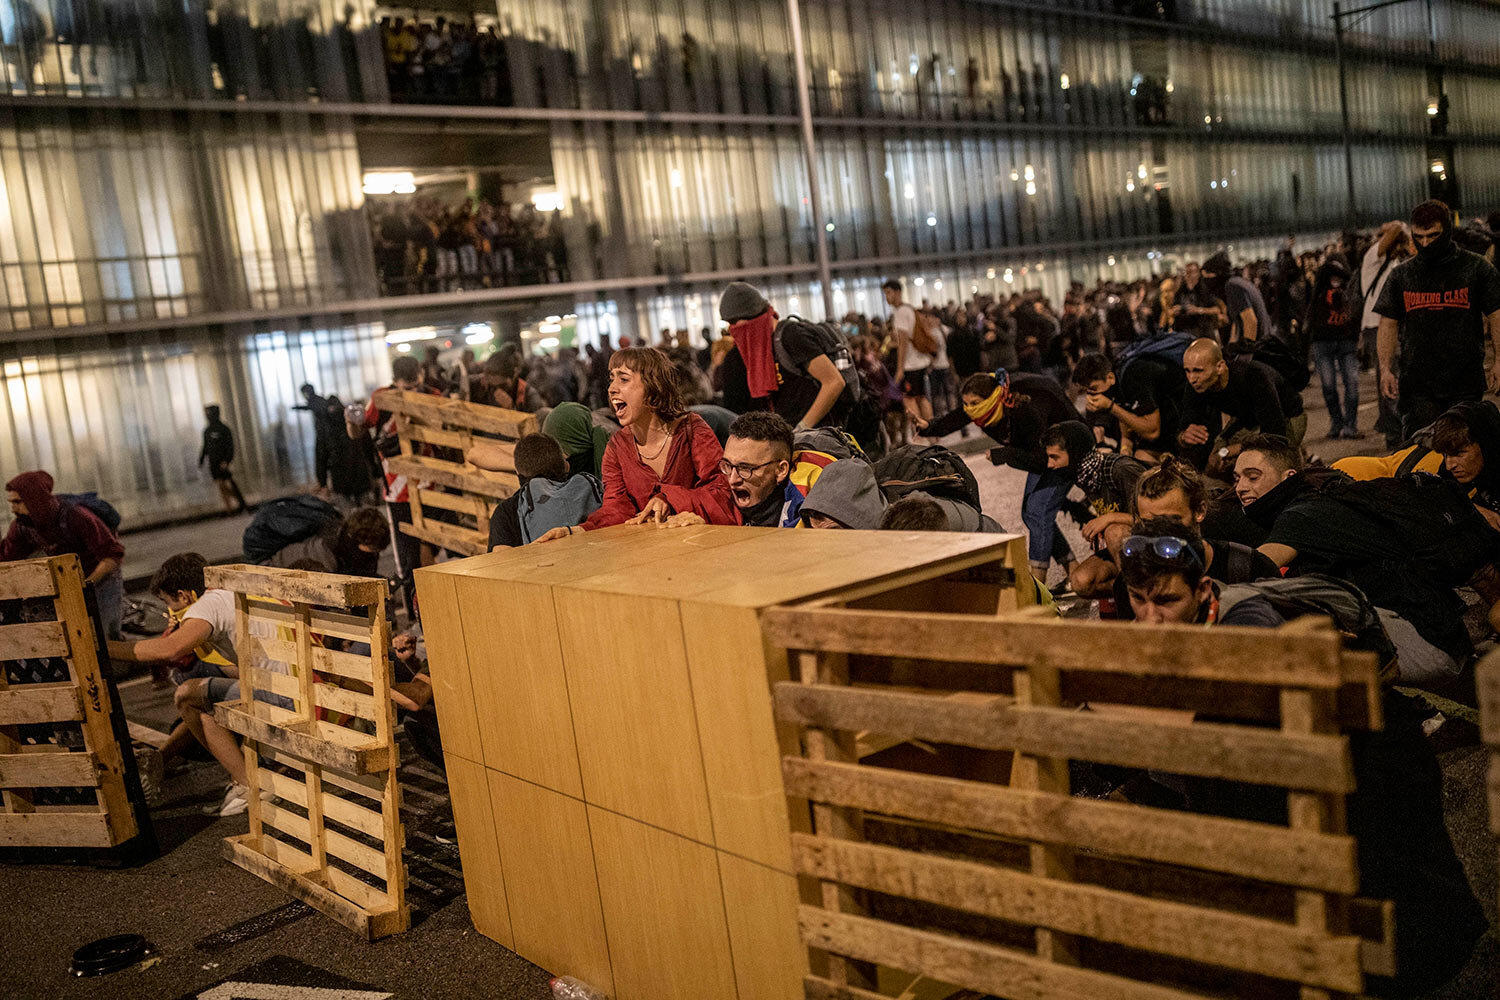 Protesters use makeshift barricades during a demonstration at El Prat airport, outskirts of Barcelona, Spain, Monday, Oct. 14, 2019. (AP Photo/Bernat Armangue)